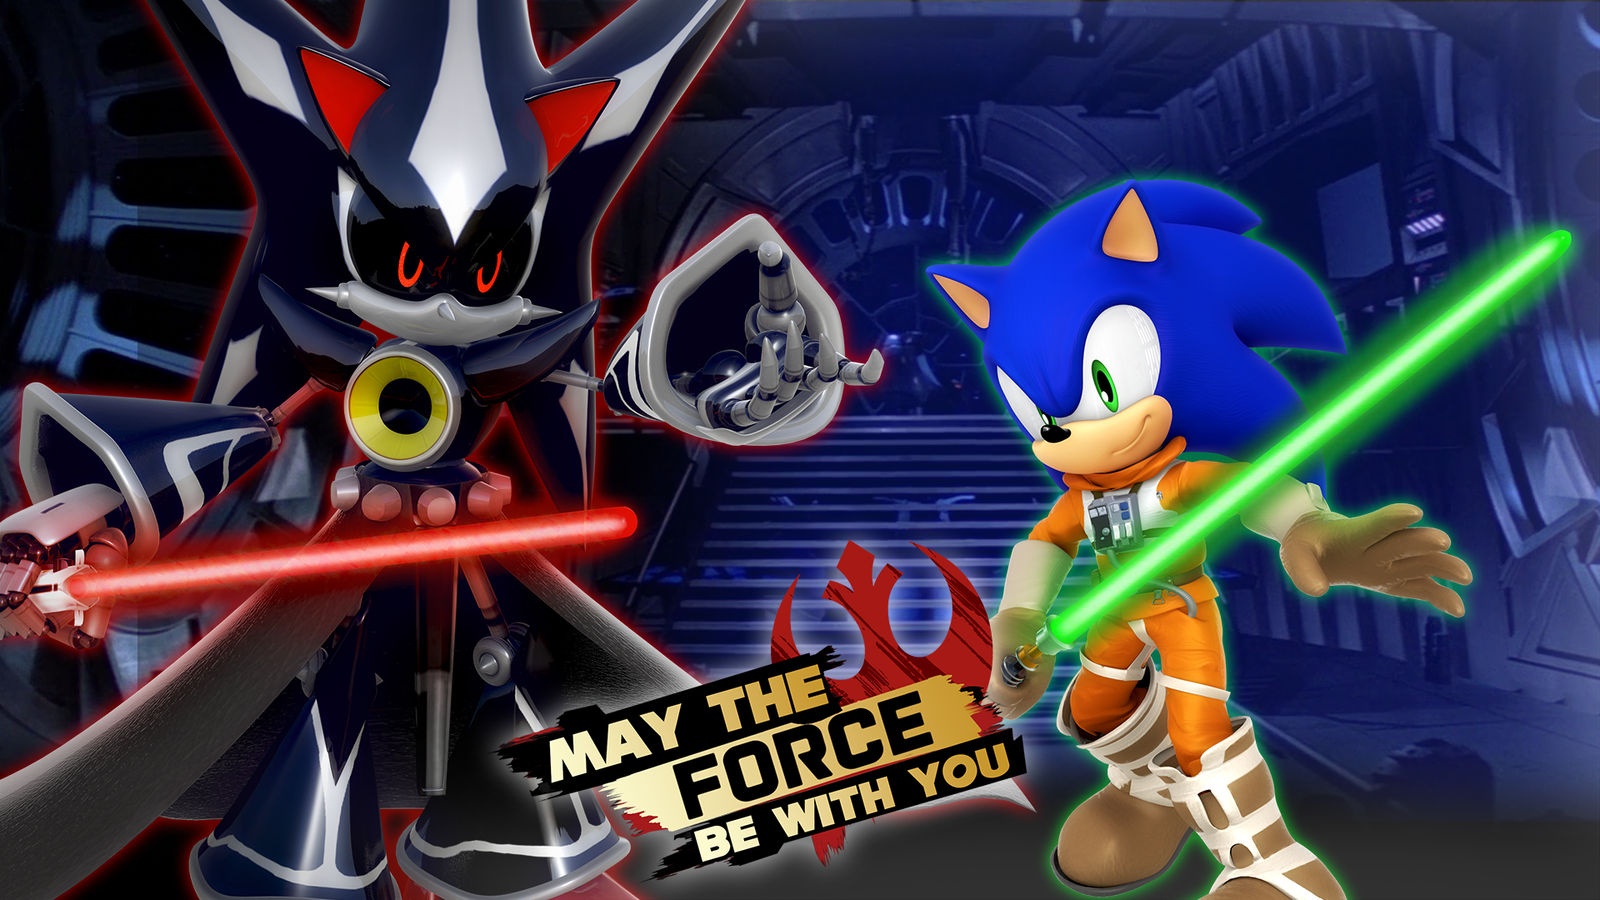 May The Force Be With You Wallpaper By Nibroc Rock On Deviantart